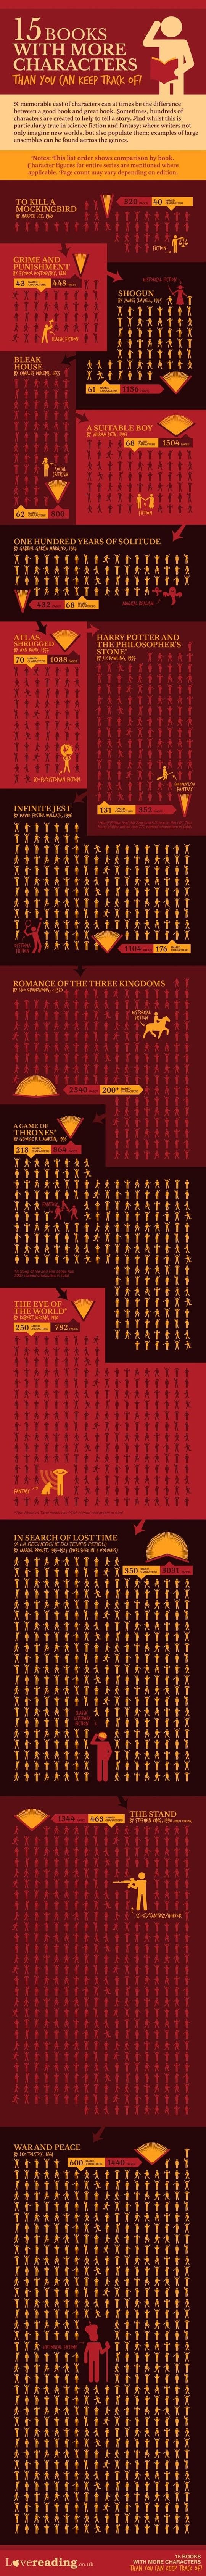 "There are 600 named characters in Leo Tolstoy's ""War and Peace"" #infographic"